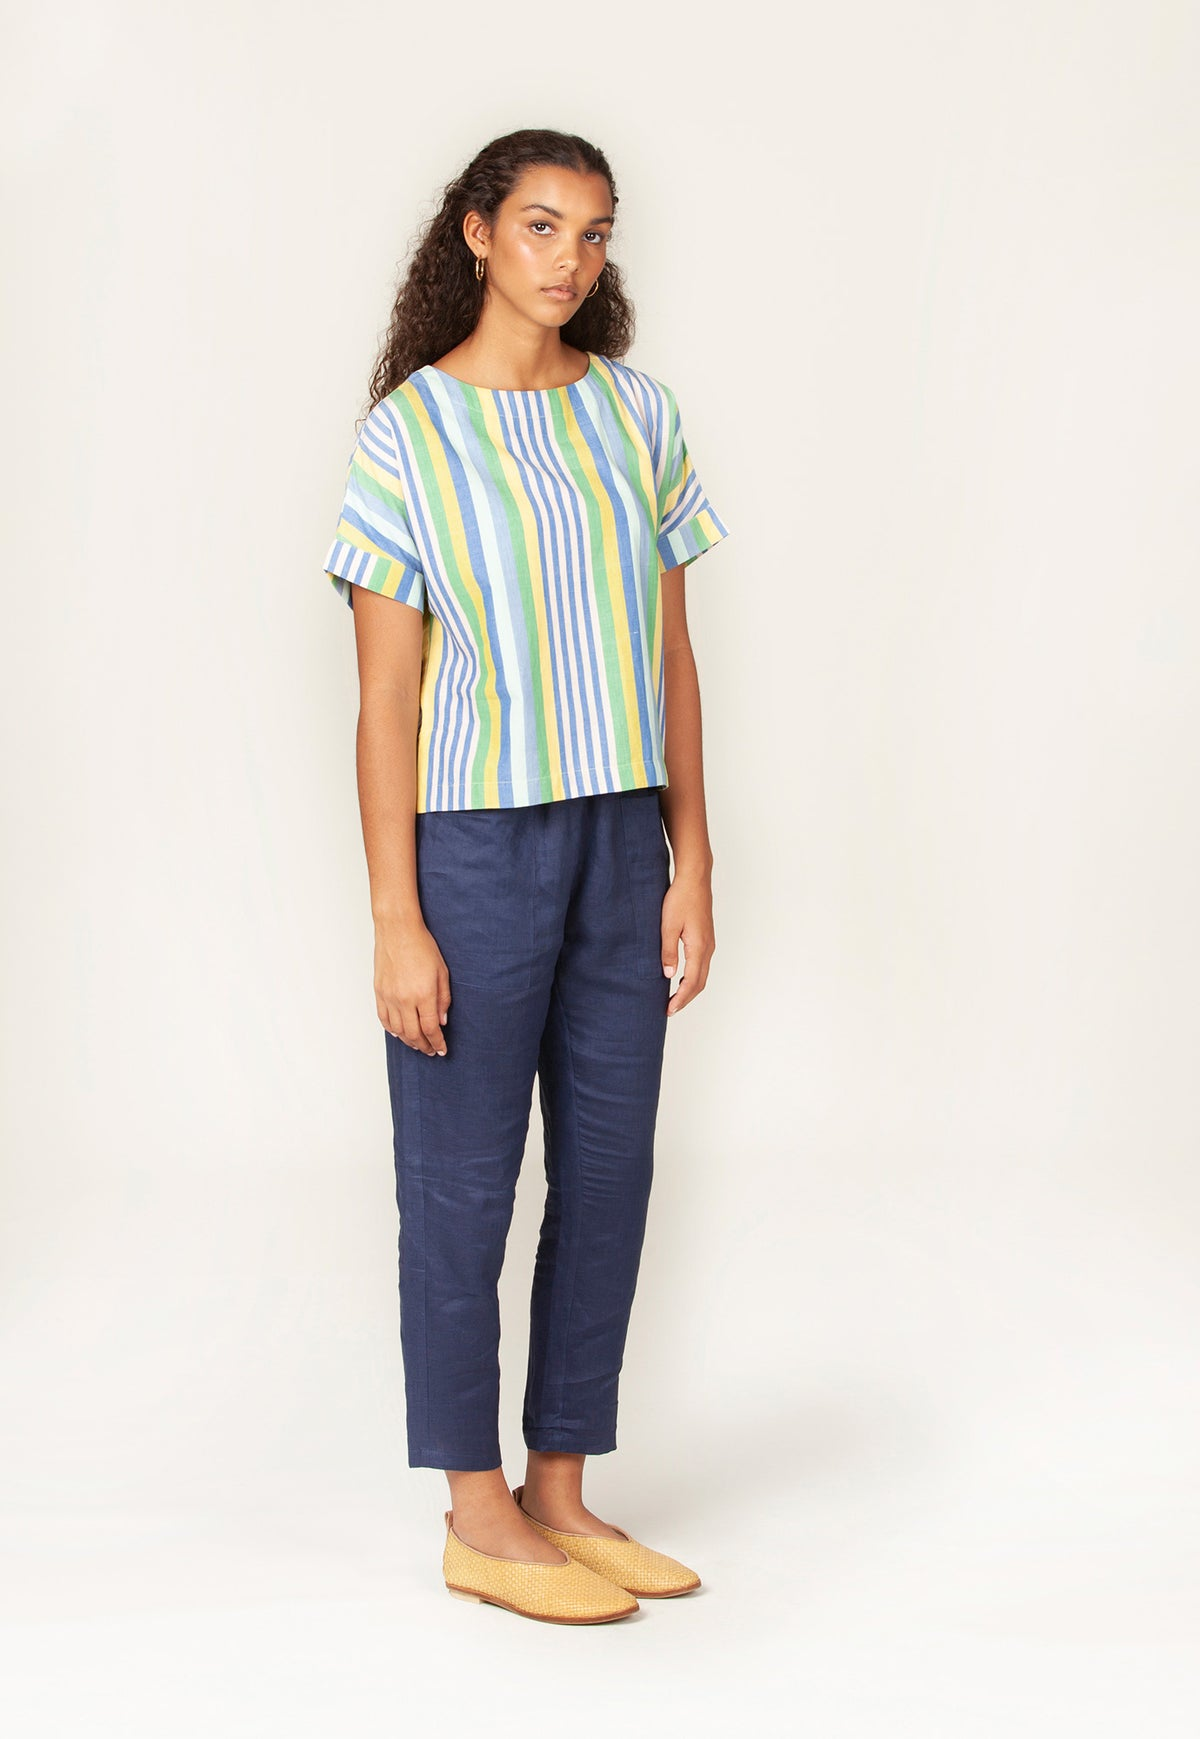 Dolman Top - Pacific Stripe